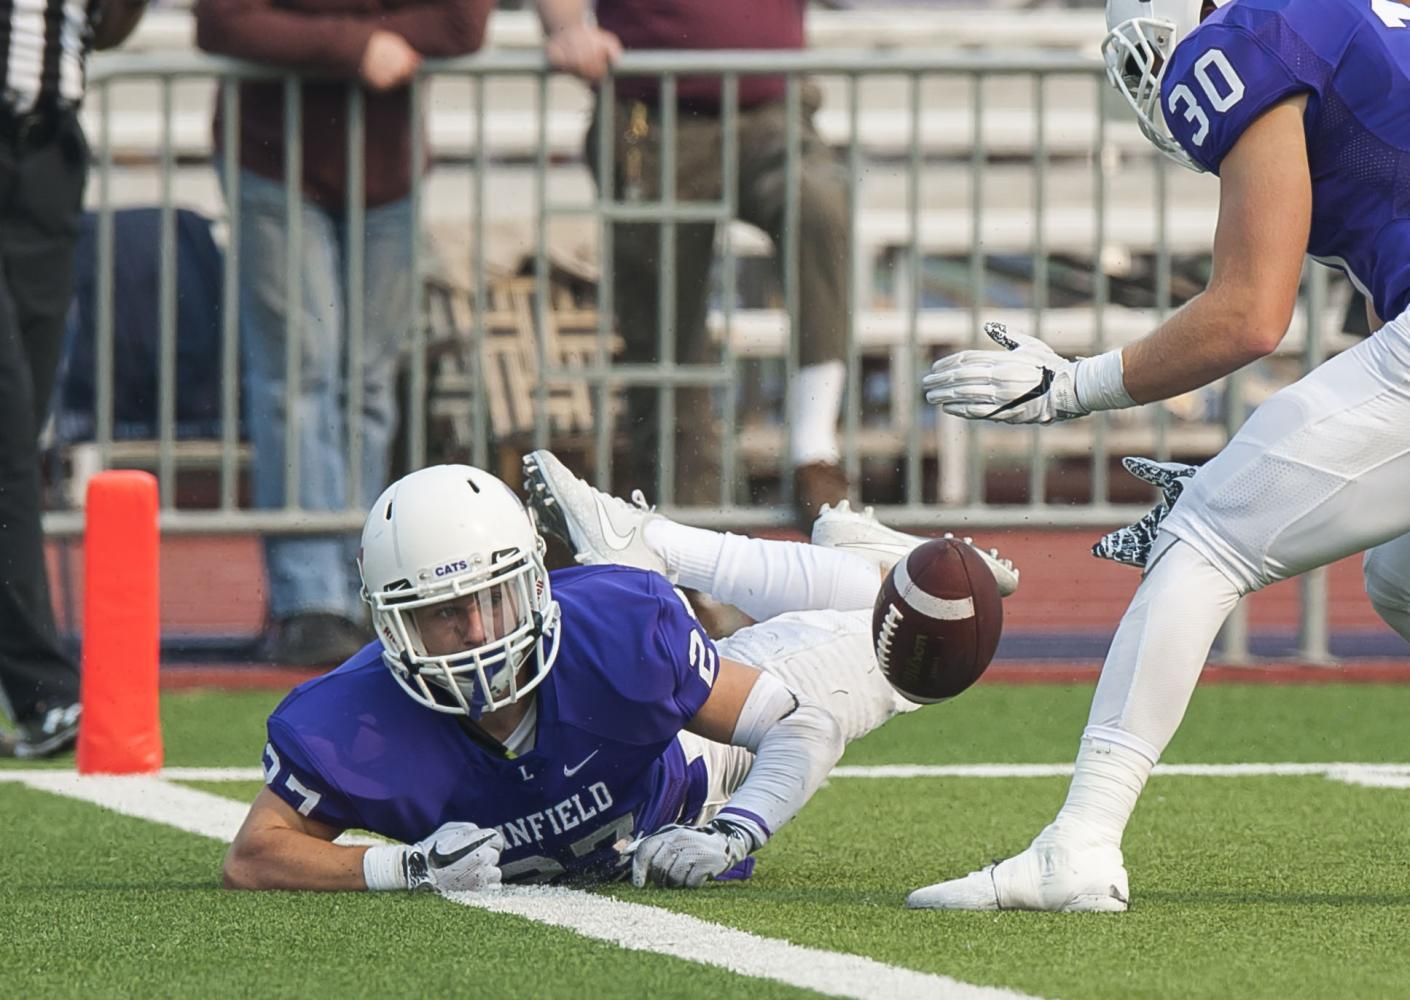 Linfield's Keegan Weiss just fails to down a 48-yard punt by Colton Ramos inside the 1-yard line in the Wildcat's final drive of the third quarter. Mary Hardin-Baylor led 17-3 at the time and won the game 24-3.